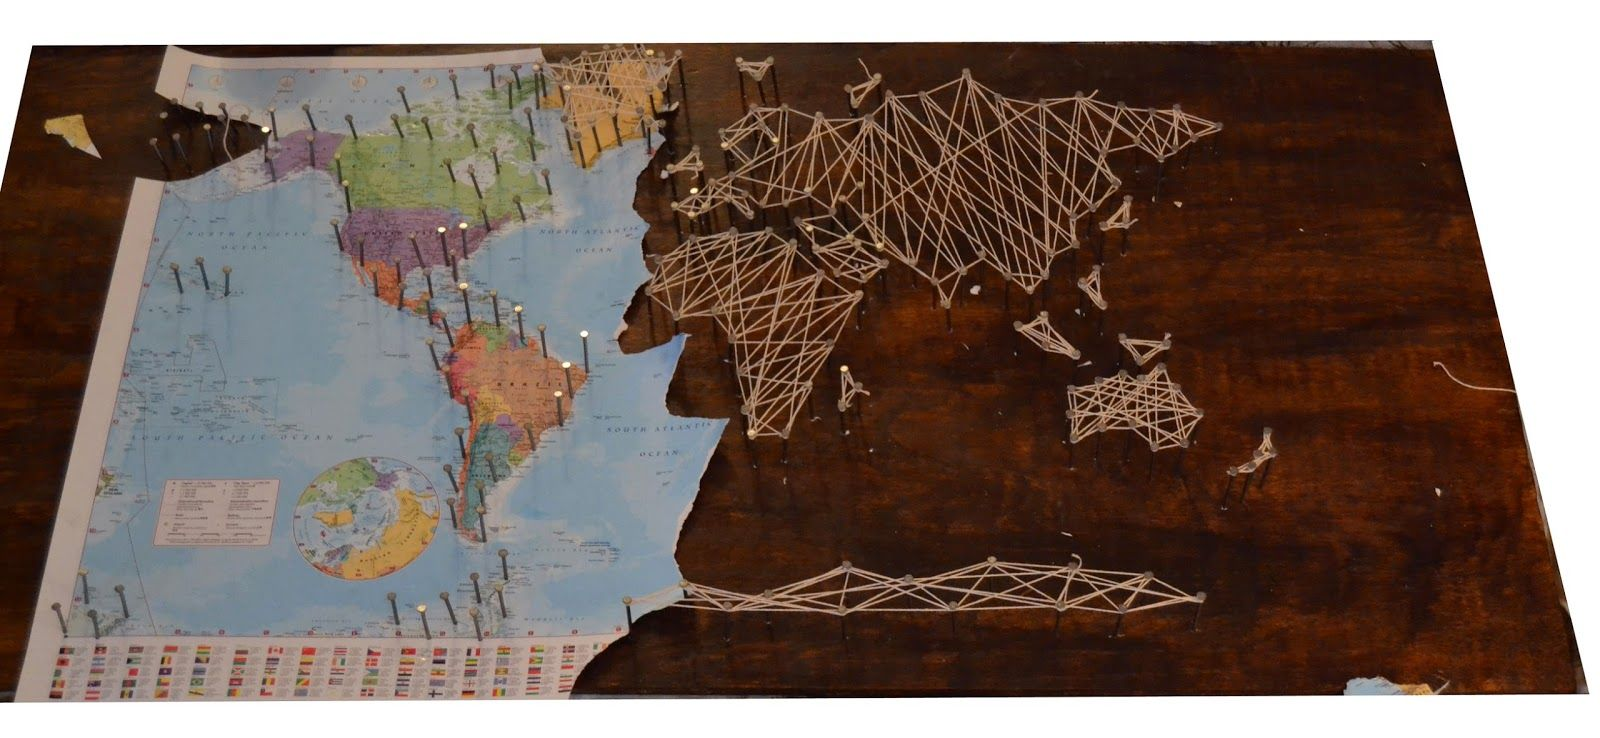 DIY: String Art World Map | Ideas for the House | Pinterest